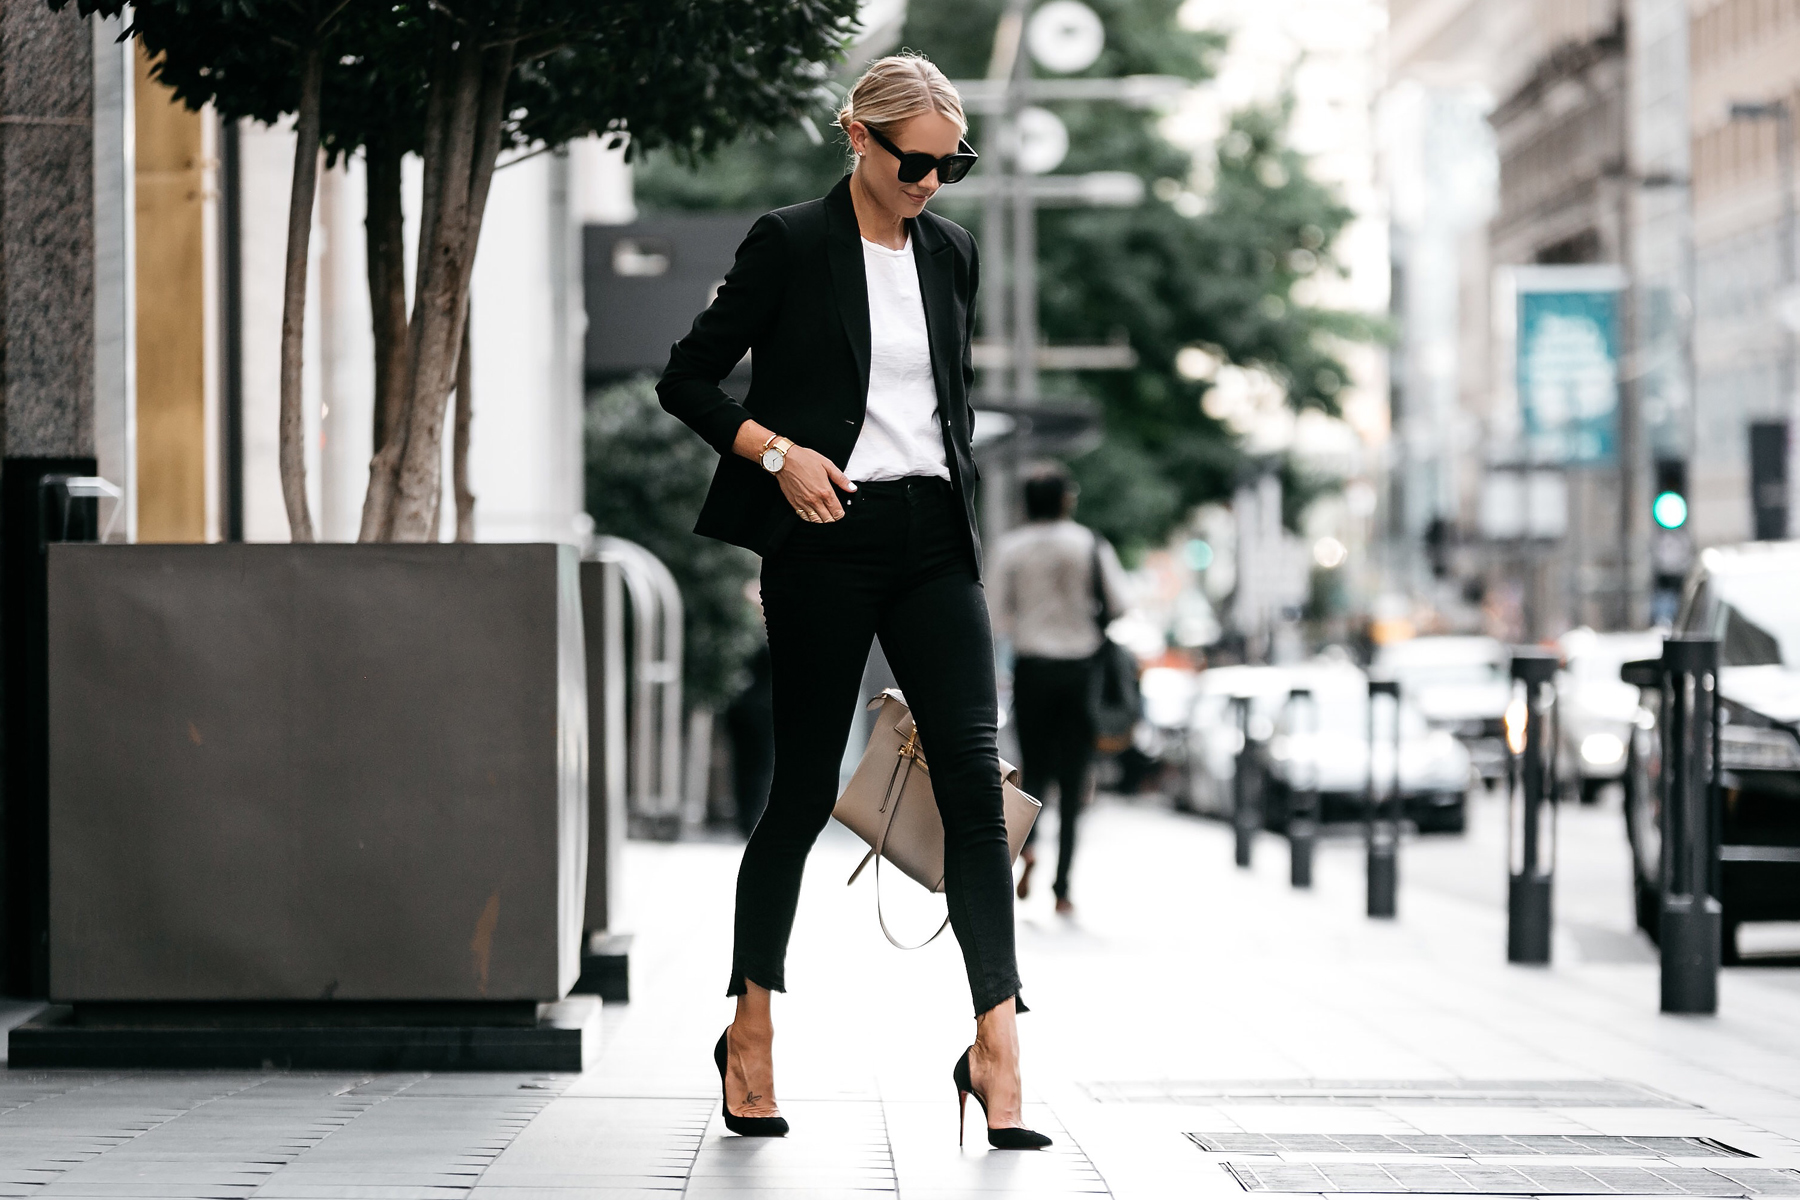 Blonde Wearing Nordstrom Black Blazer White Tshirt Black Raw Hem Jeans Outfit Christian Louboutin Black Pumps Celine Belt Bag Fashion Jackson Dallas Blogger Fashion Blogger Street Style